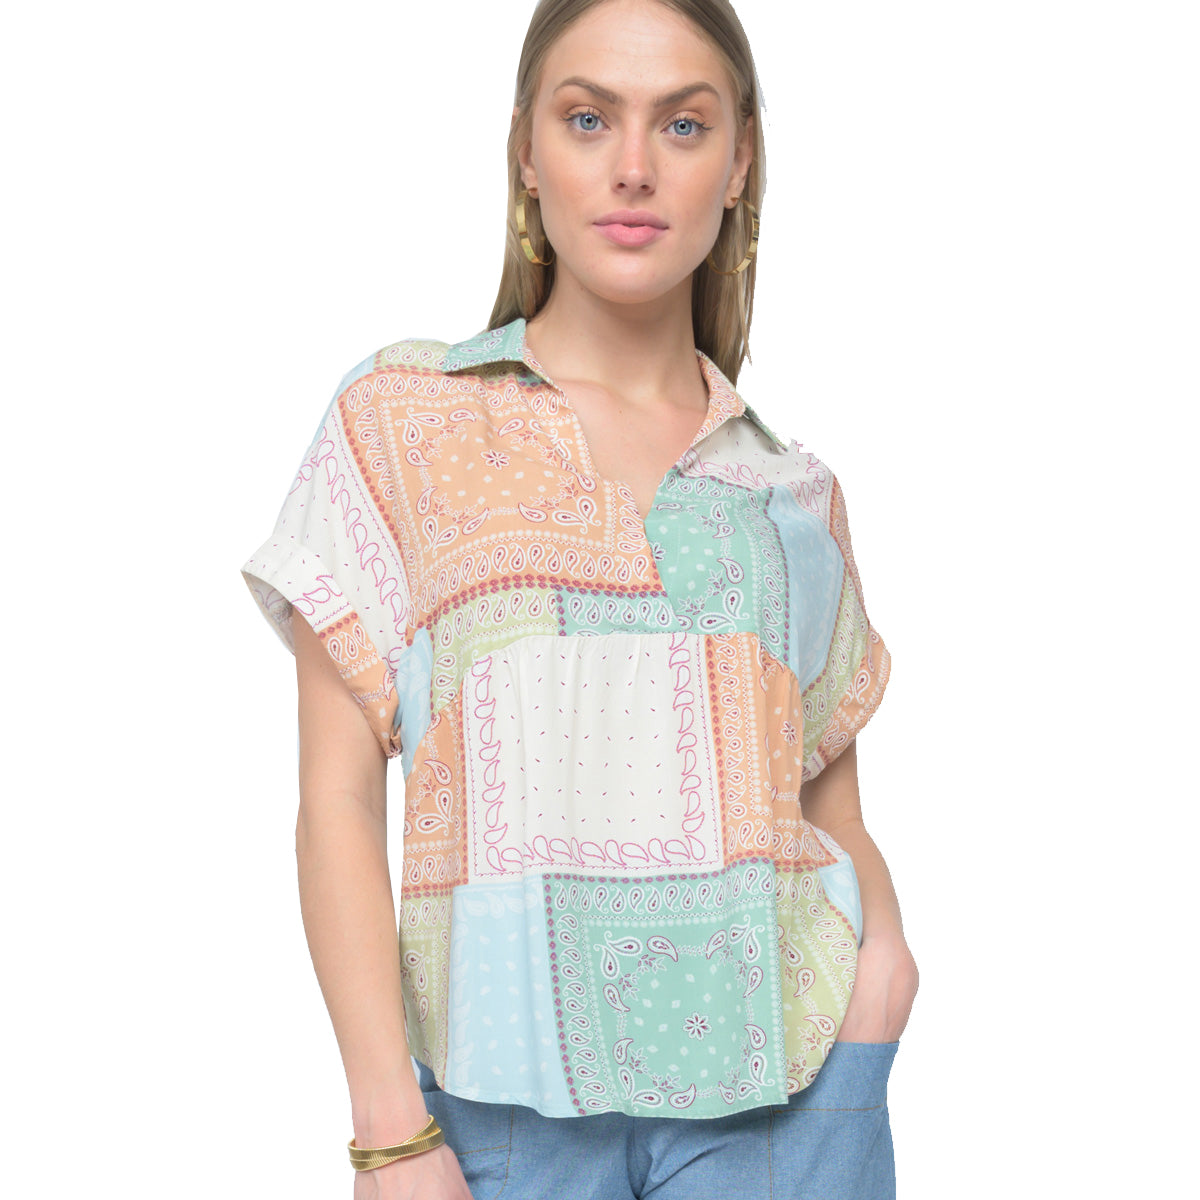 Ivy Jane Women's Patch Me Up Top - Pastel